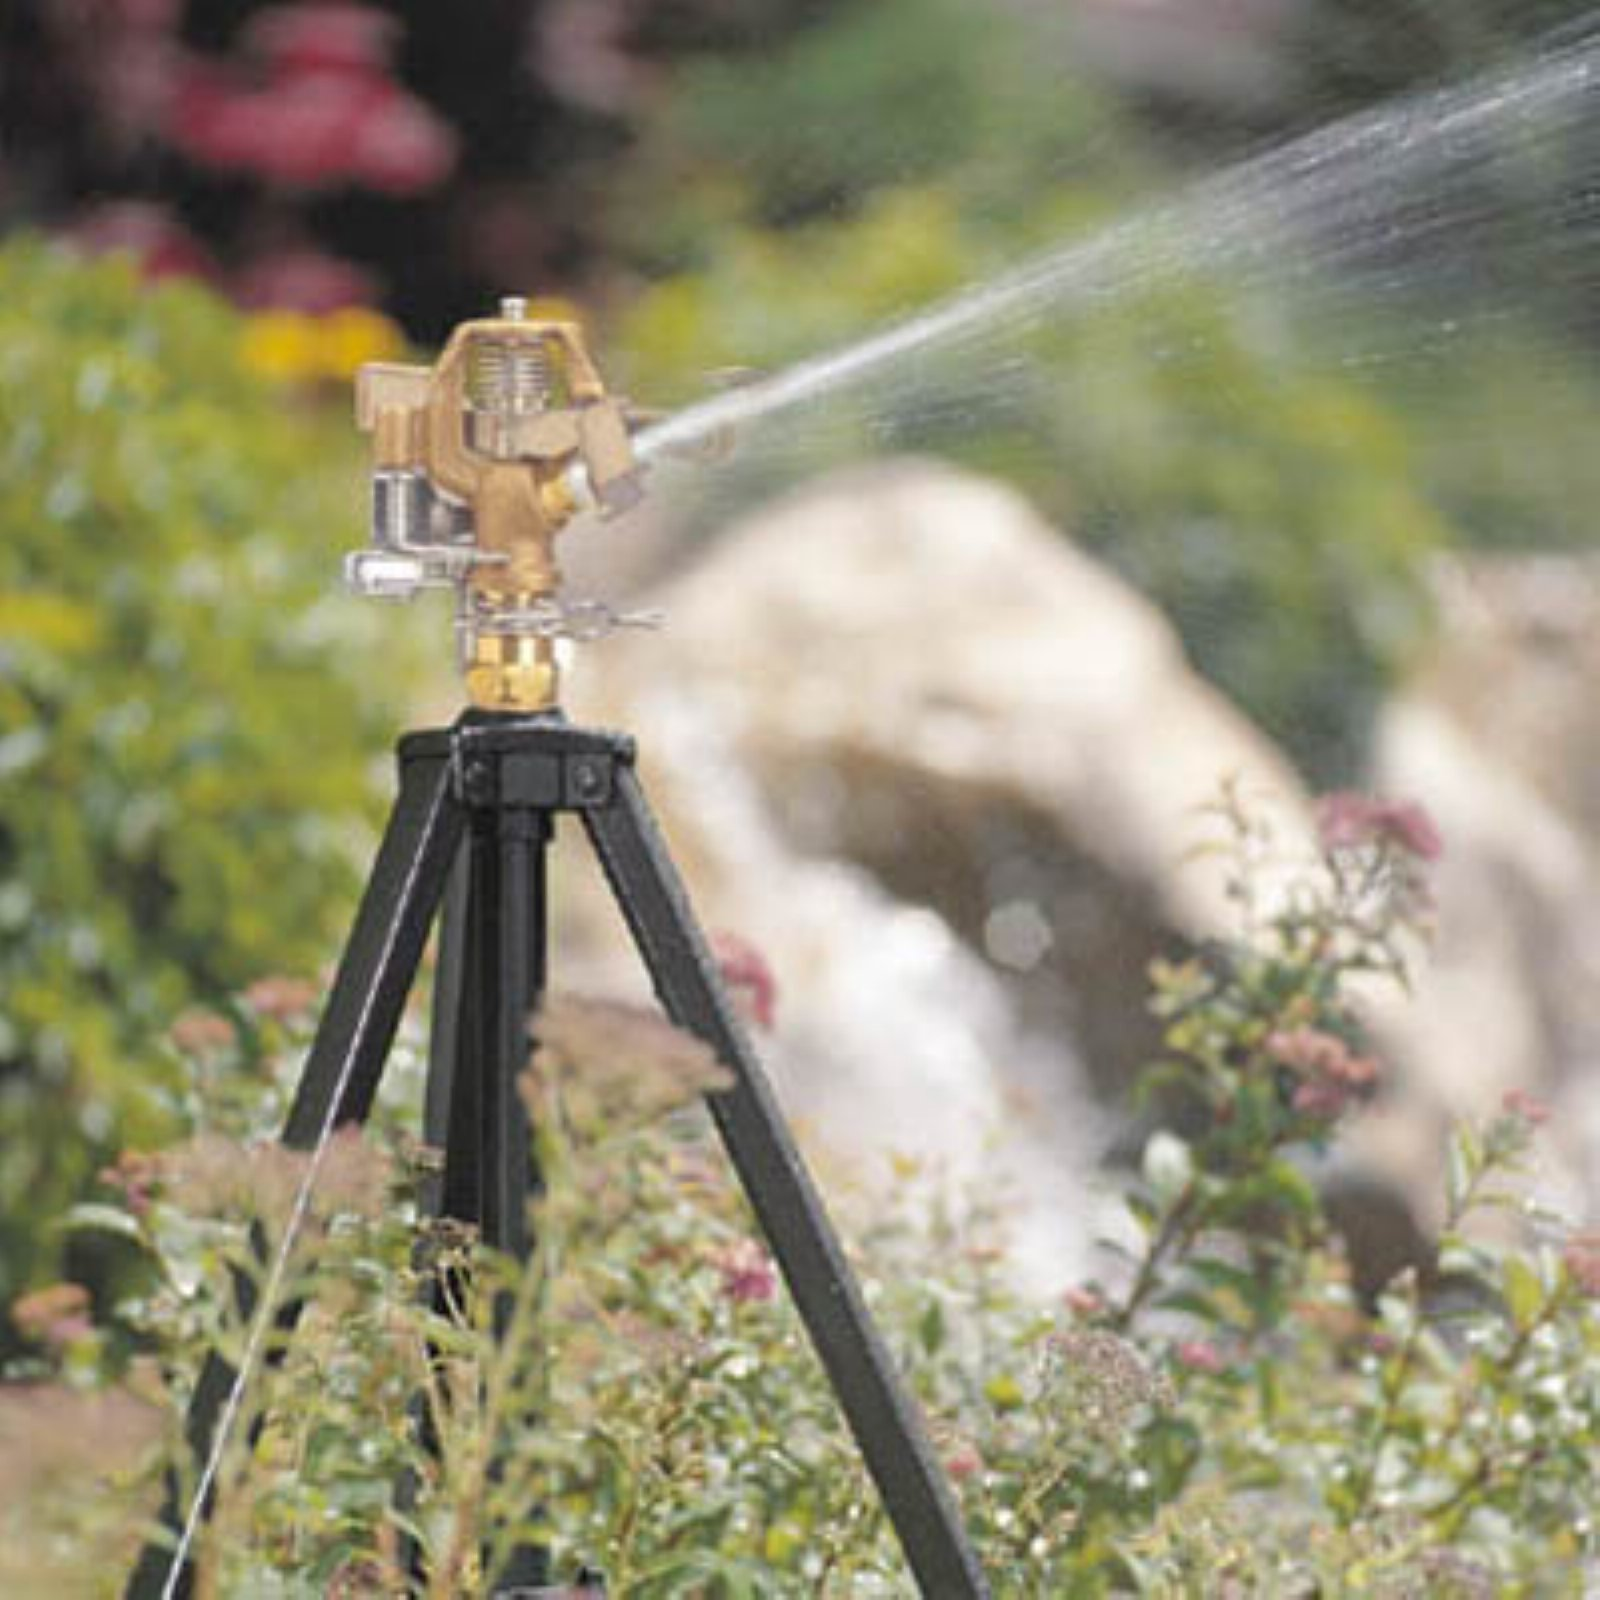 Orbit 58308N Telescoping Tripod Sprinkler by Orbit